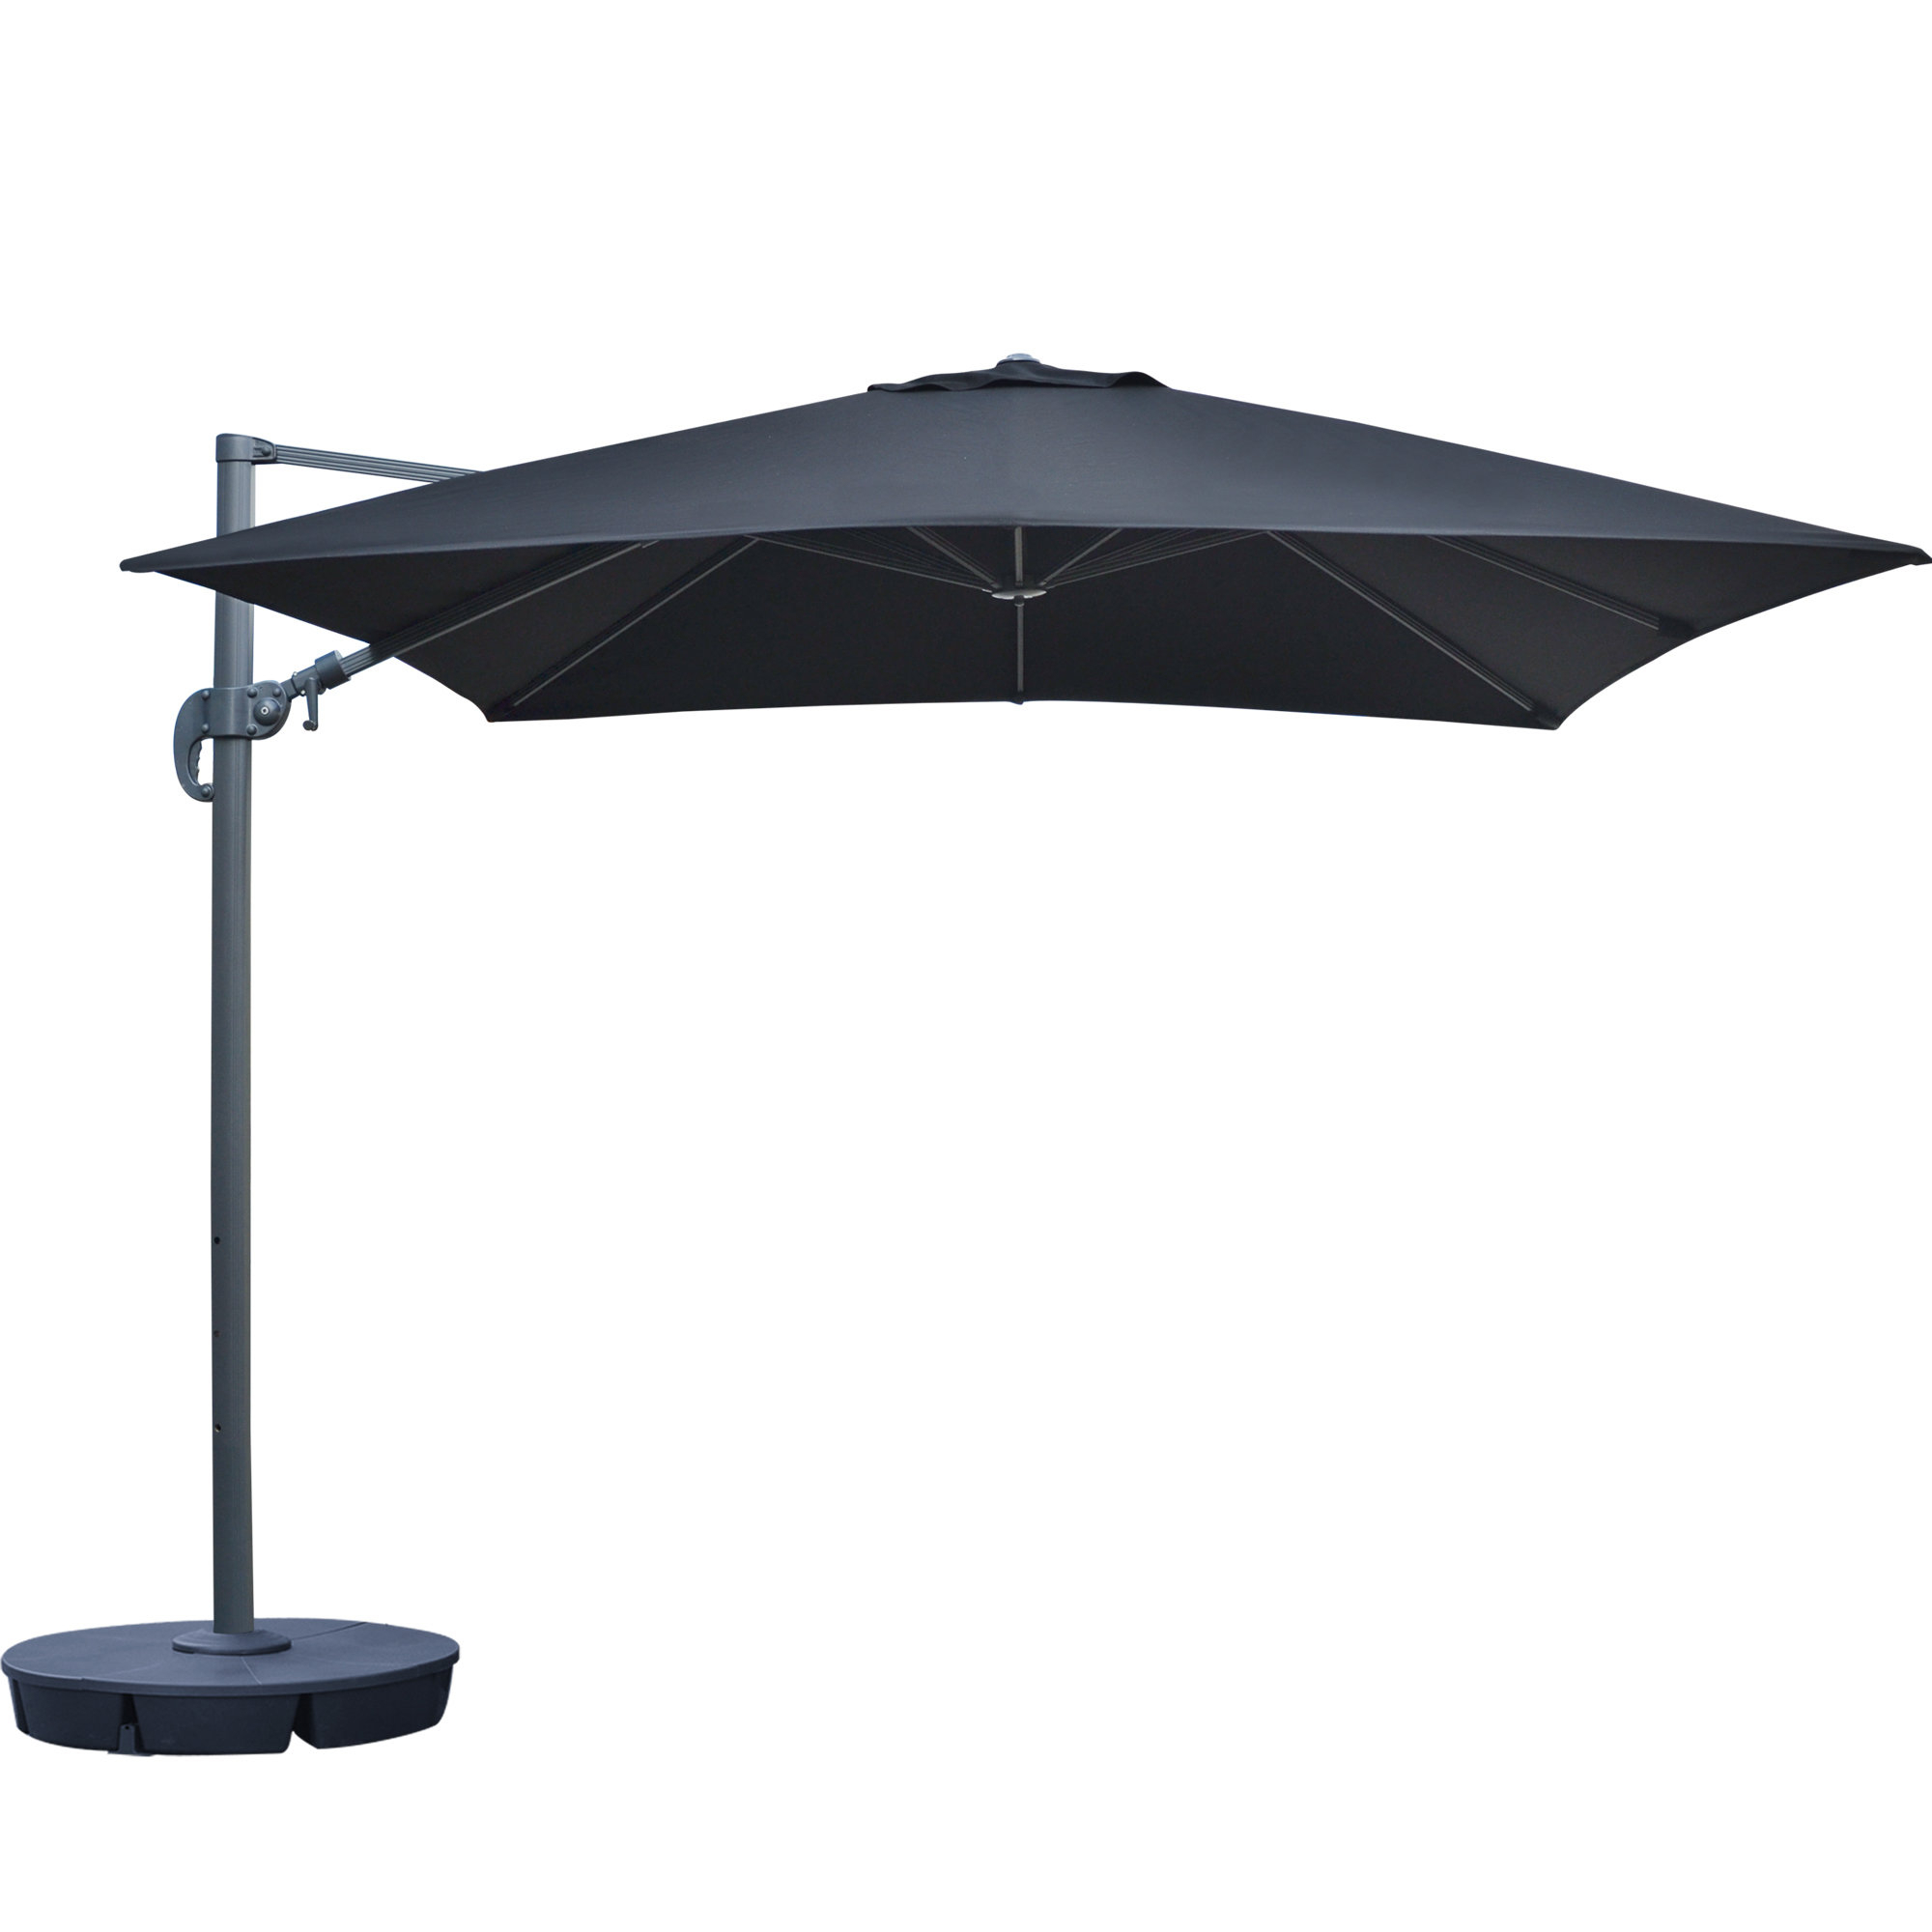 Emely Cantilever Umbrellas With Regard To Current Emely 10' Cantilever Sunbrella Umbrella (View 2 of 20)